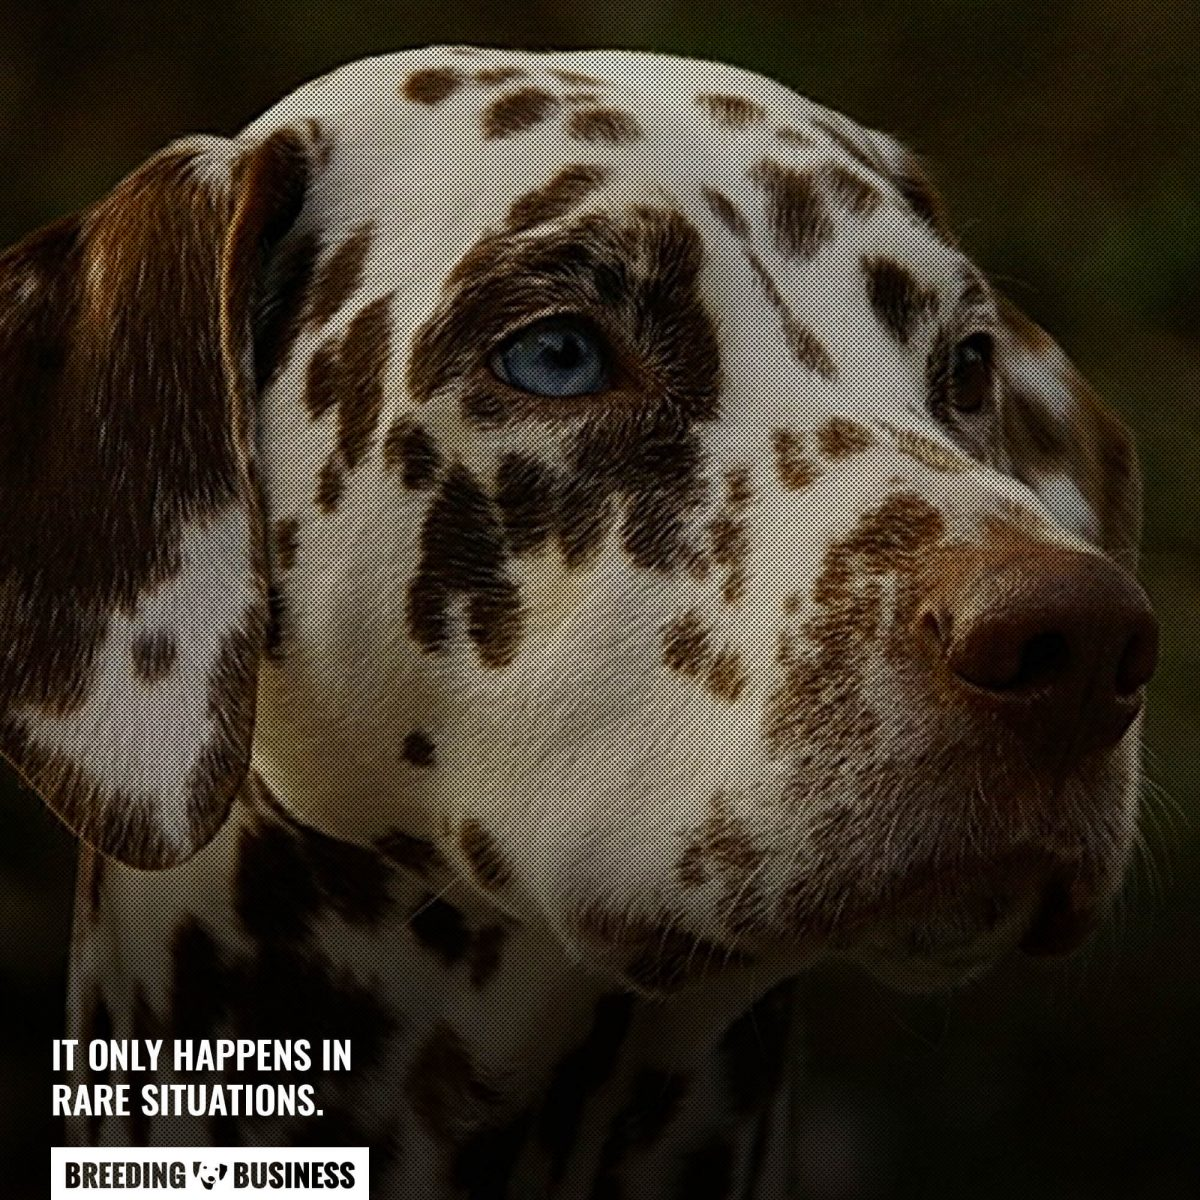 blue-eyed dalmatians are rare